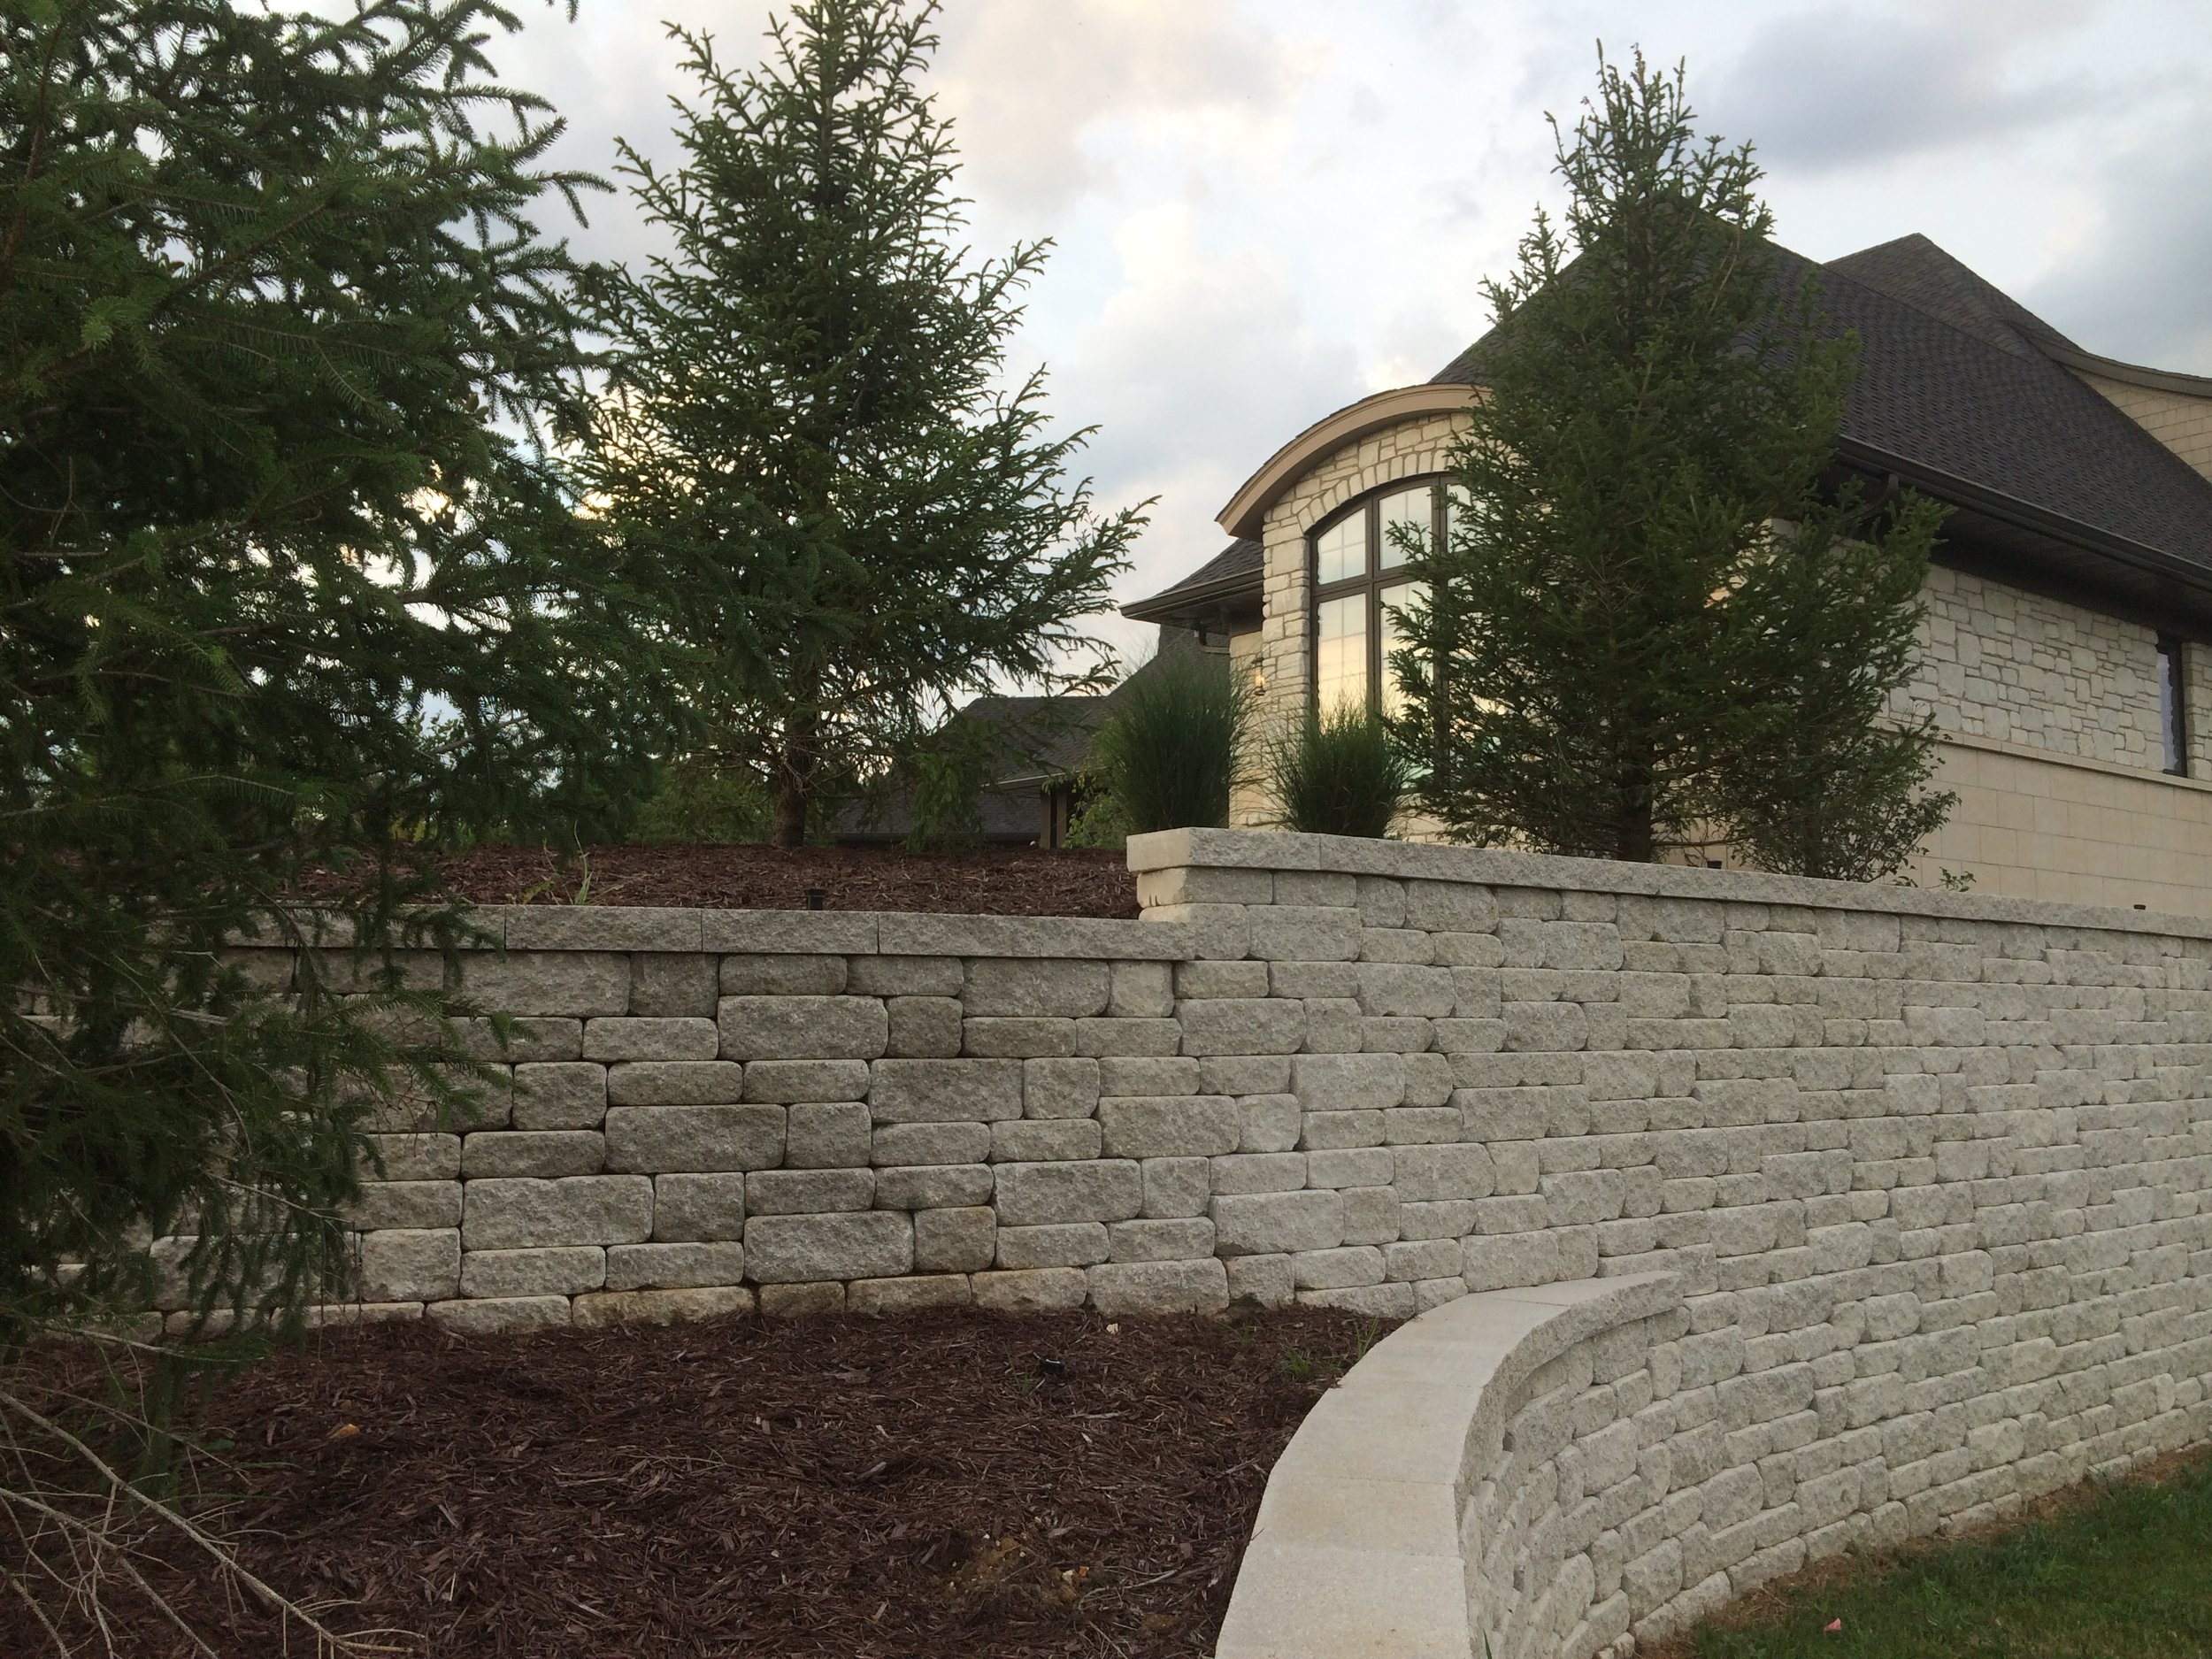 retaining_walls_weathered_versa-lok_MOSAIC-charcoal_3.JPG